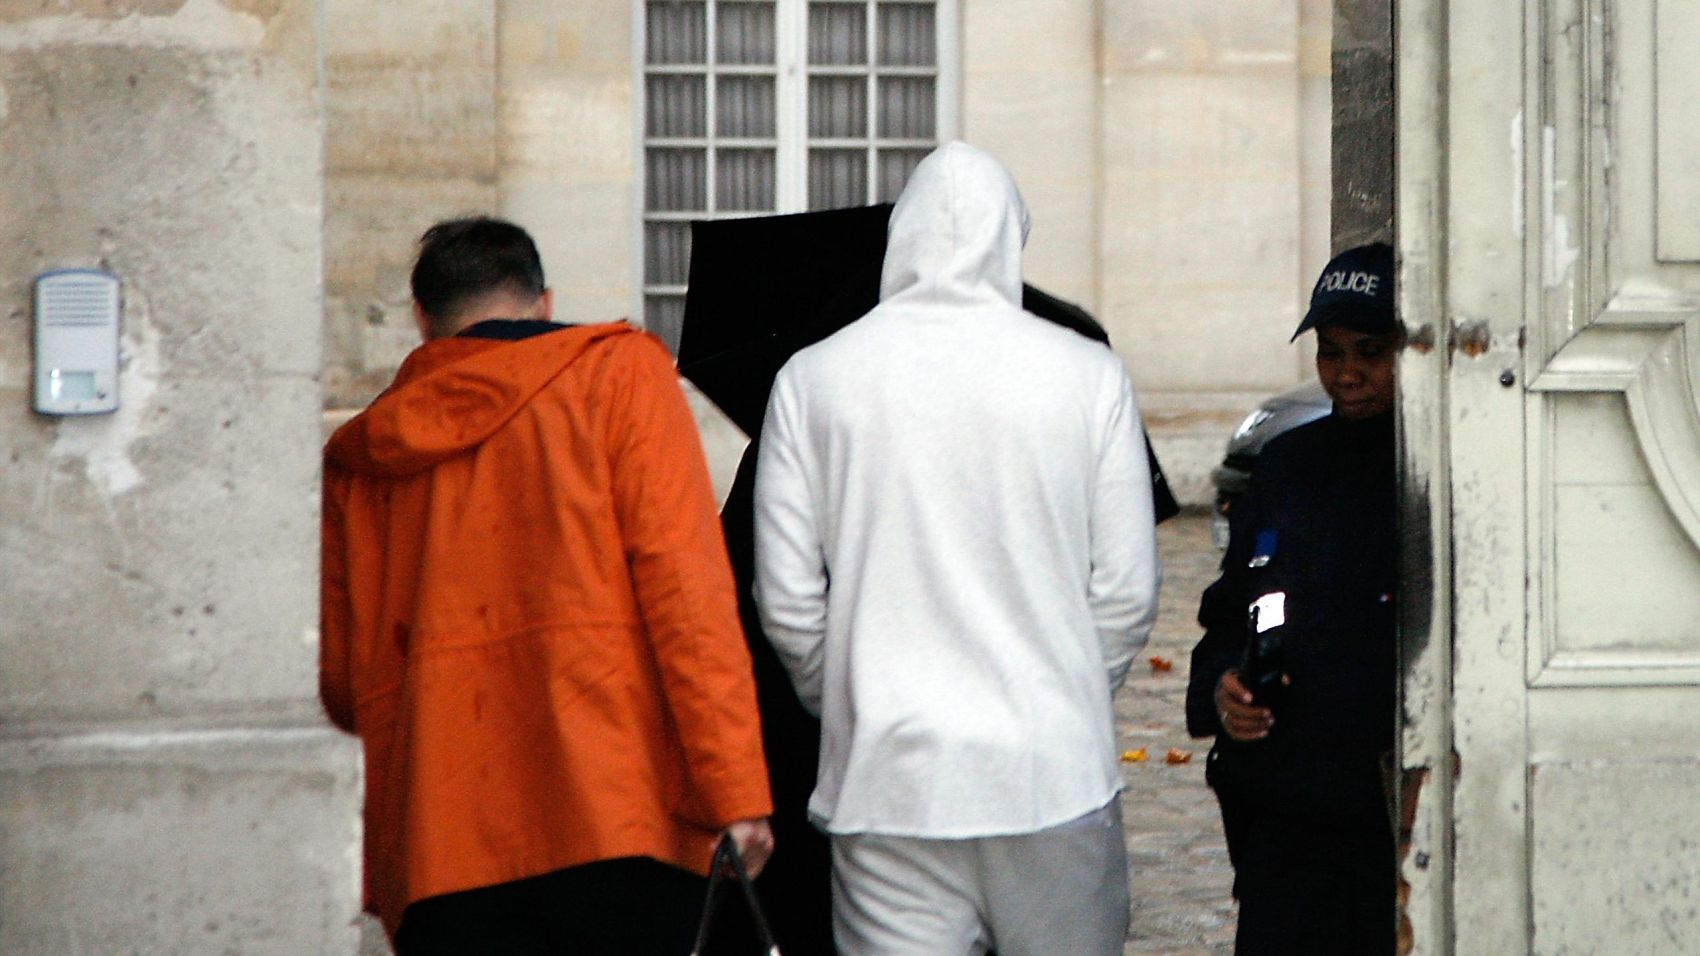 Benzema Leaving Courthouse